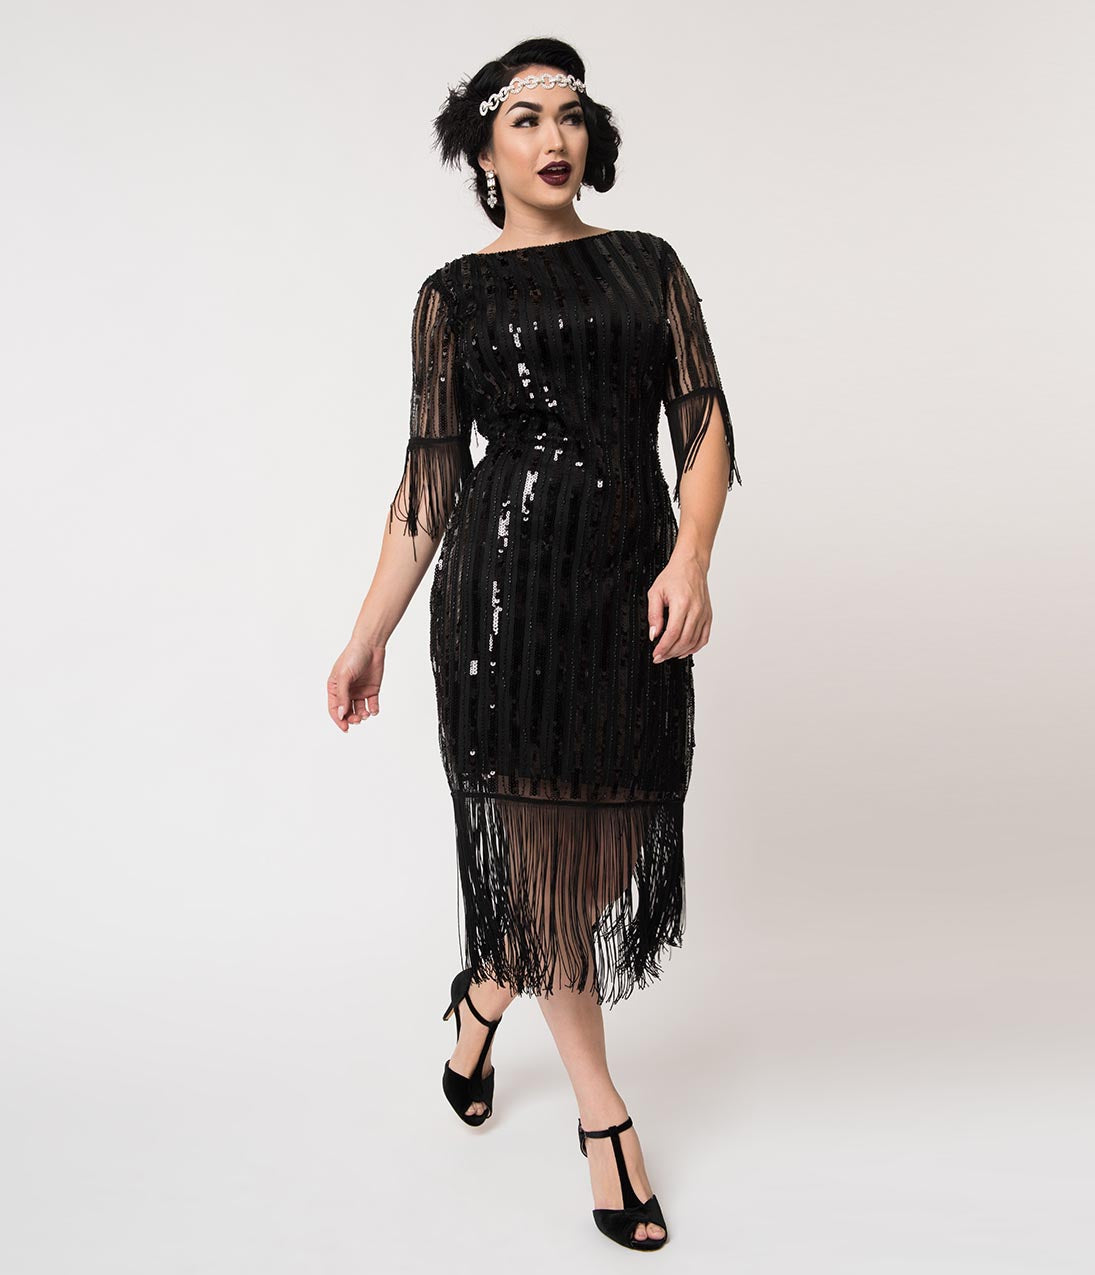 Best 1920s Prom Dresses – Great Gatsby Style Gowns Unique Vintage Black Sequin Fringe Sleeve Marcy Flapper Dress $98.00 AT vintagedancer.com